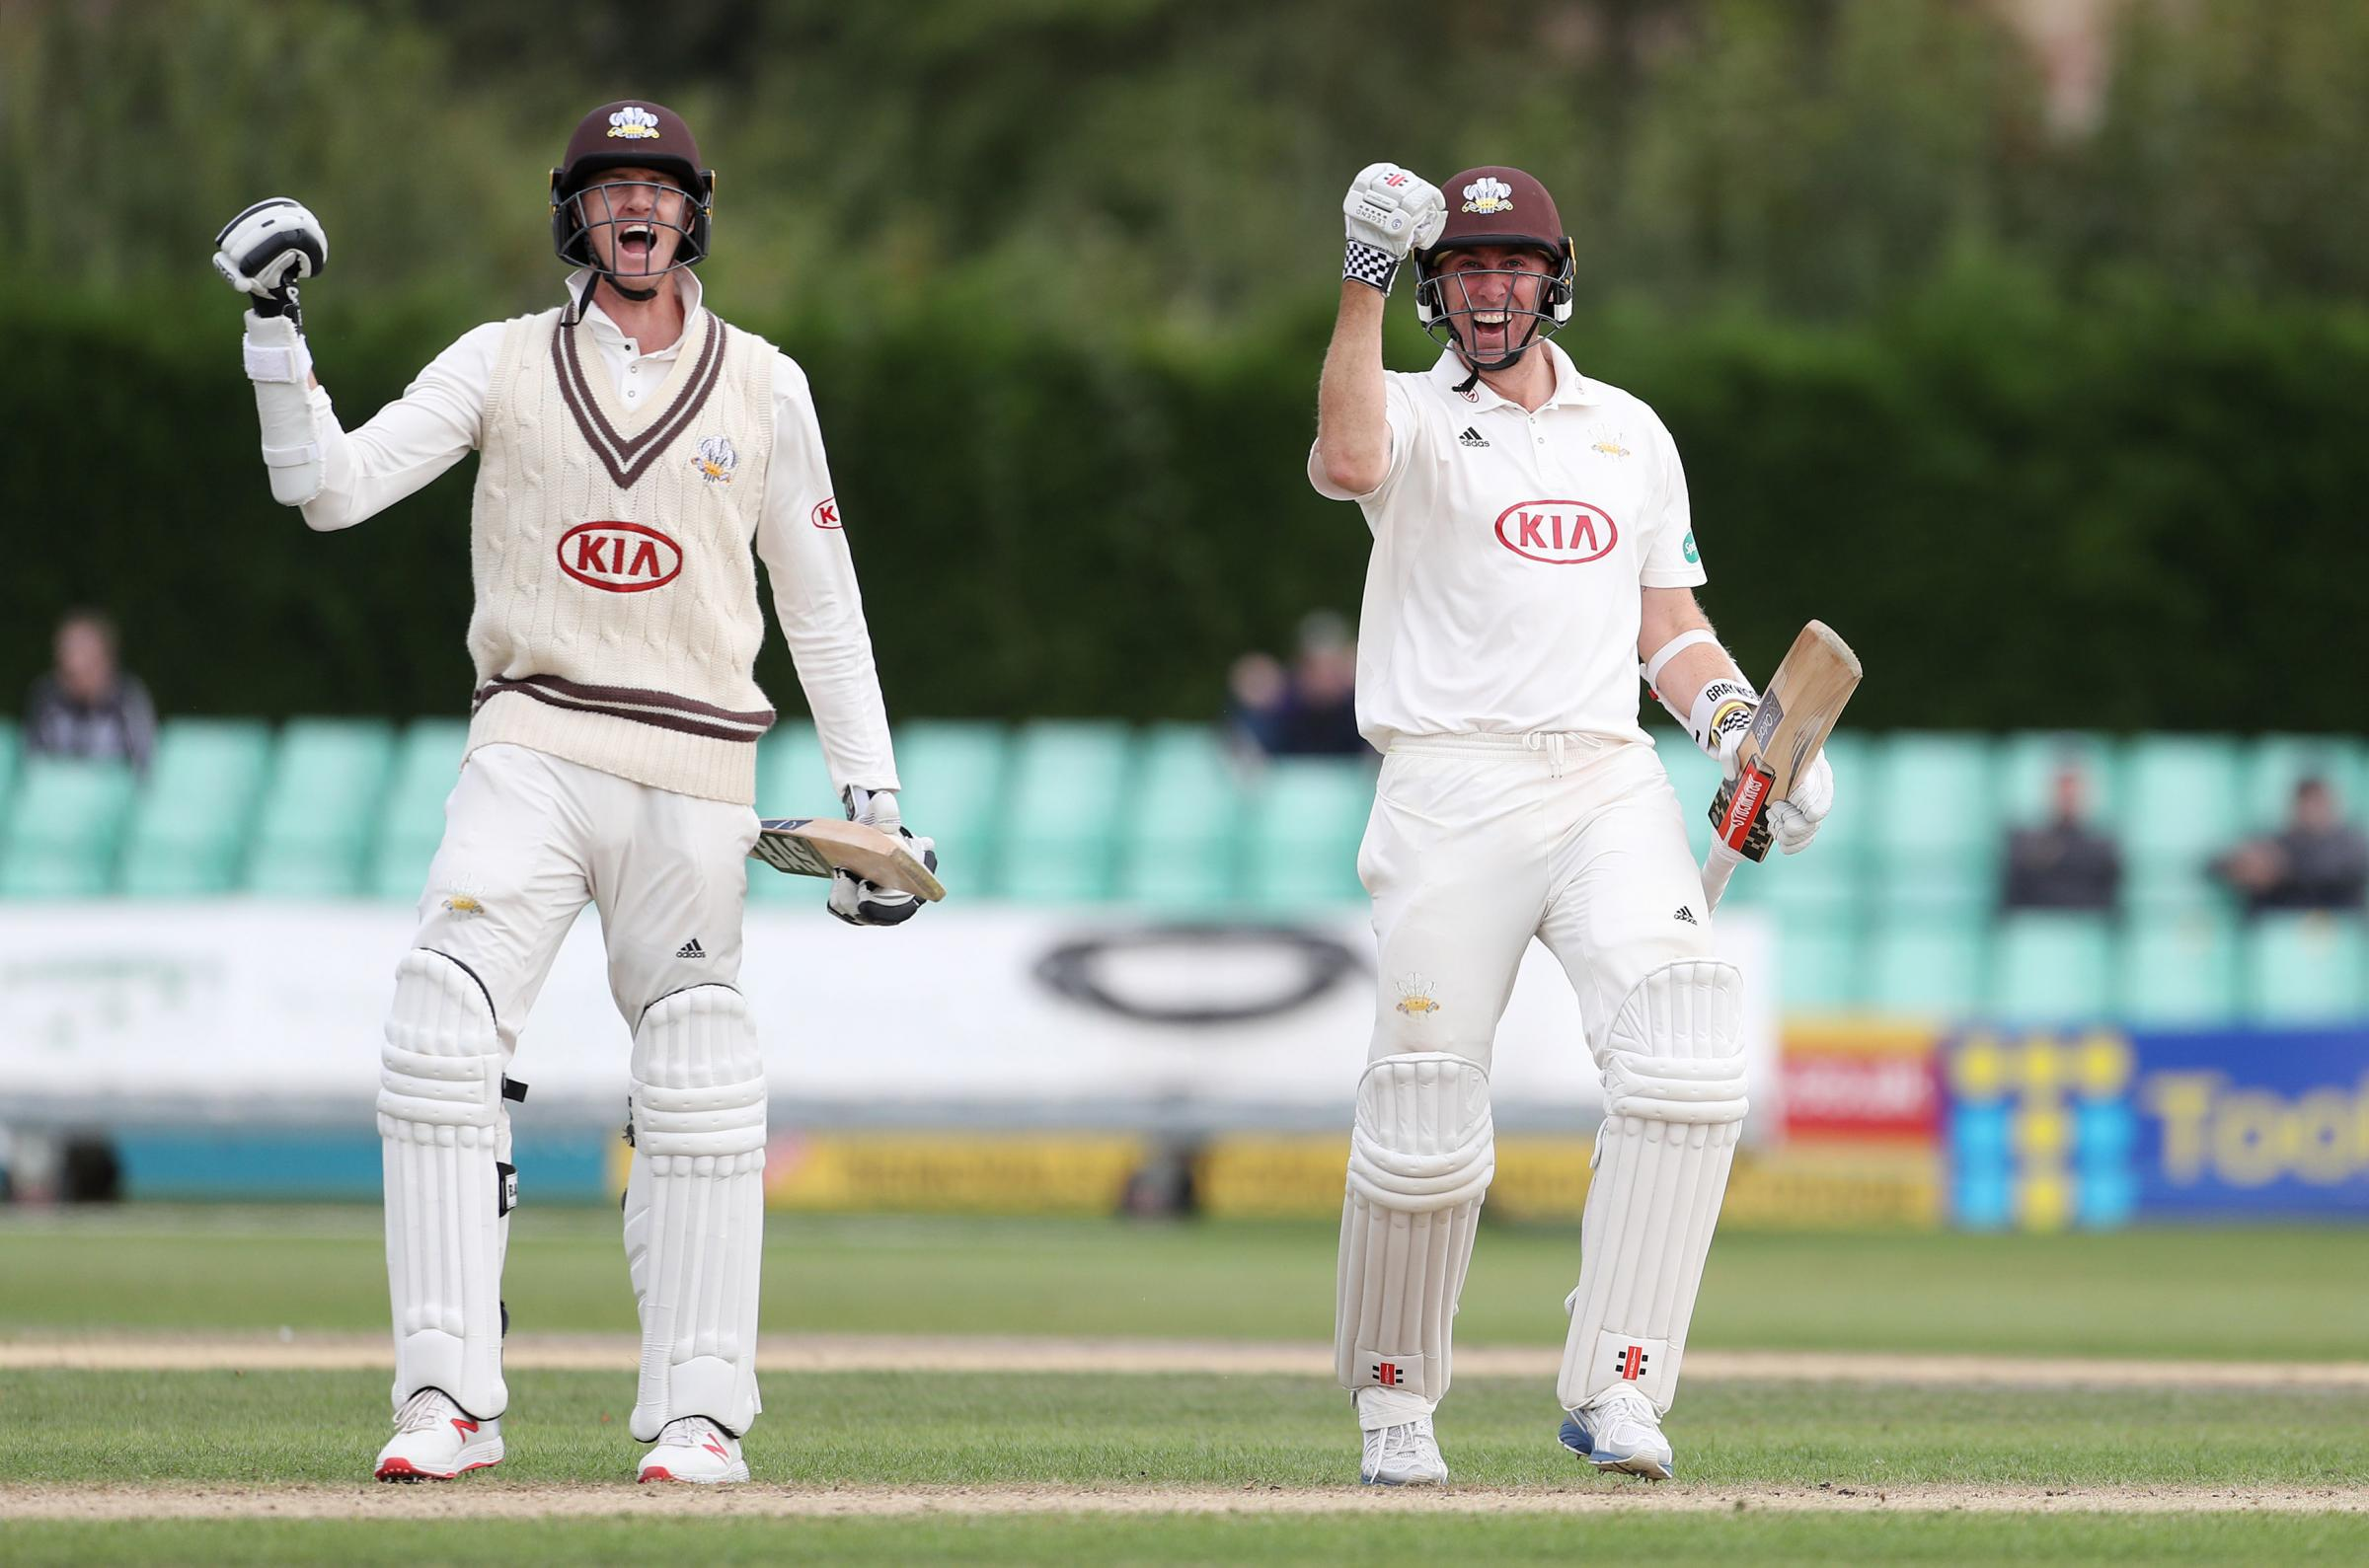 Surrey's Rikki Clarke and Morne Morkel celebrate victory over Worcestershire and clinching the Specsavers County Championship title at Blackfinch New Road, Worcester. PRESS ASSOCIATION Photo. Picture date: Thursday September 13, 2018. See PA story CRI